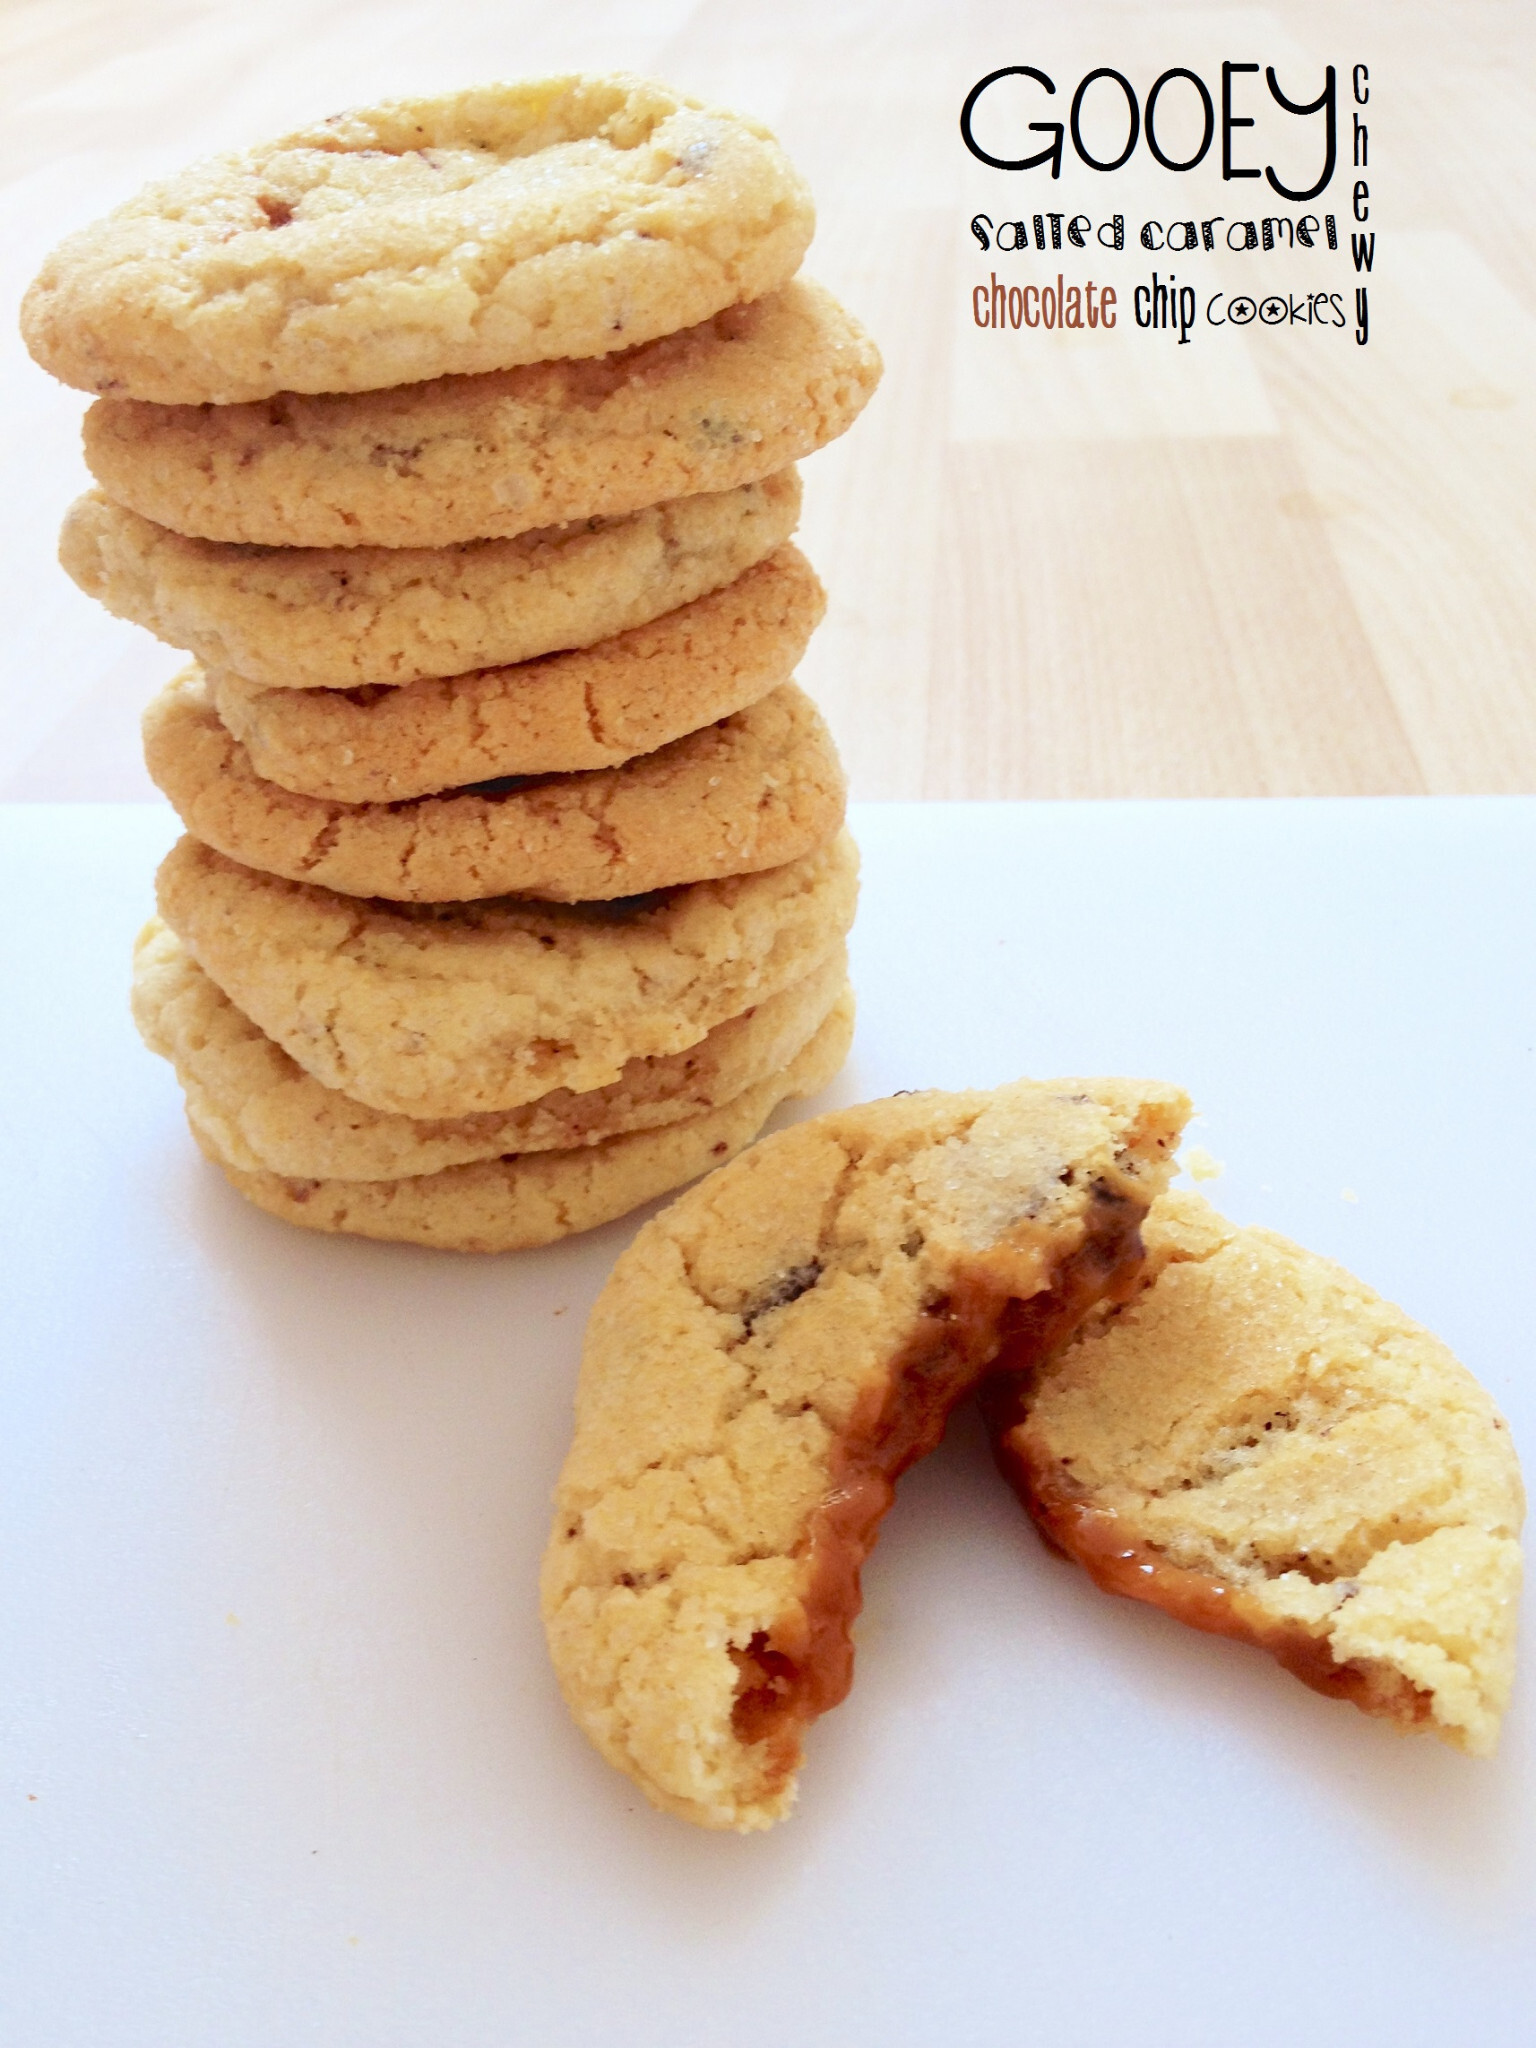 Gooey Chewy Salted Caramel Chocolate Chip Cookies